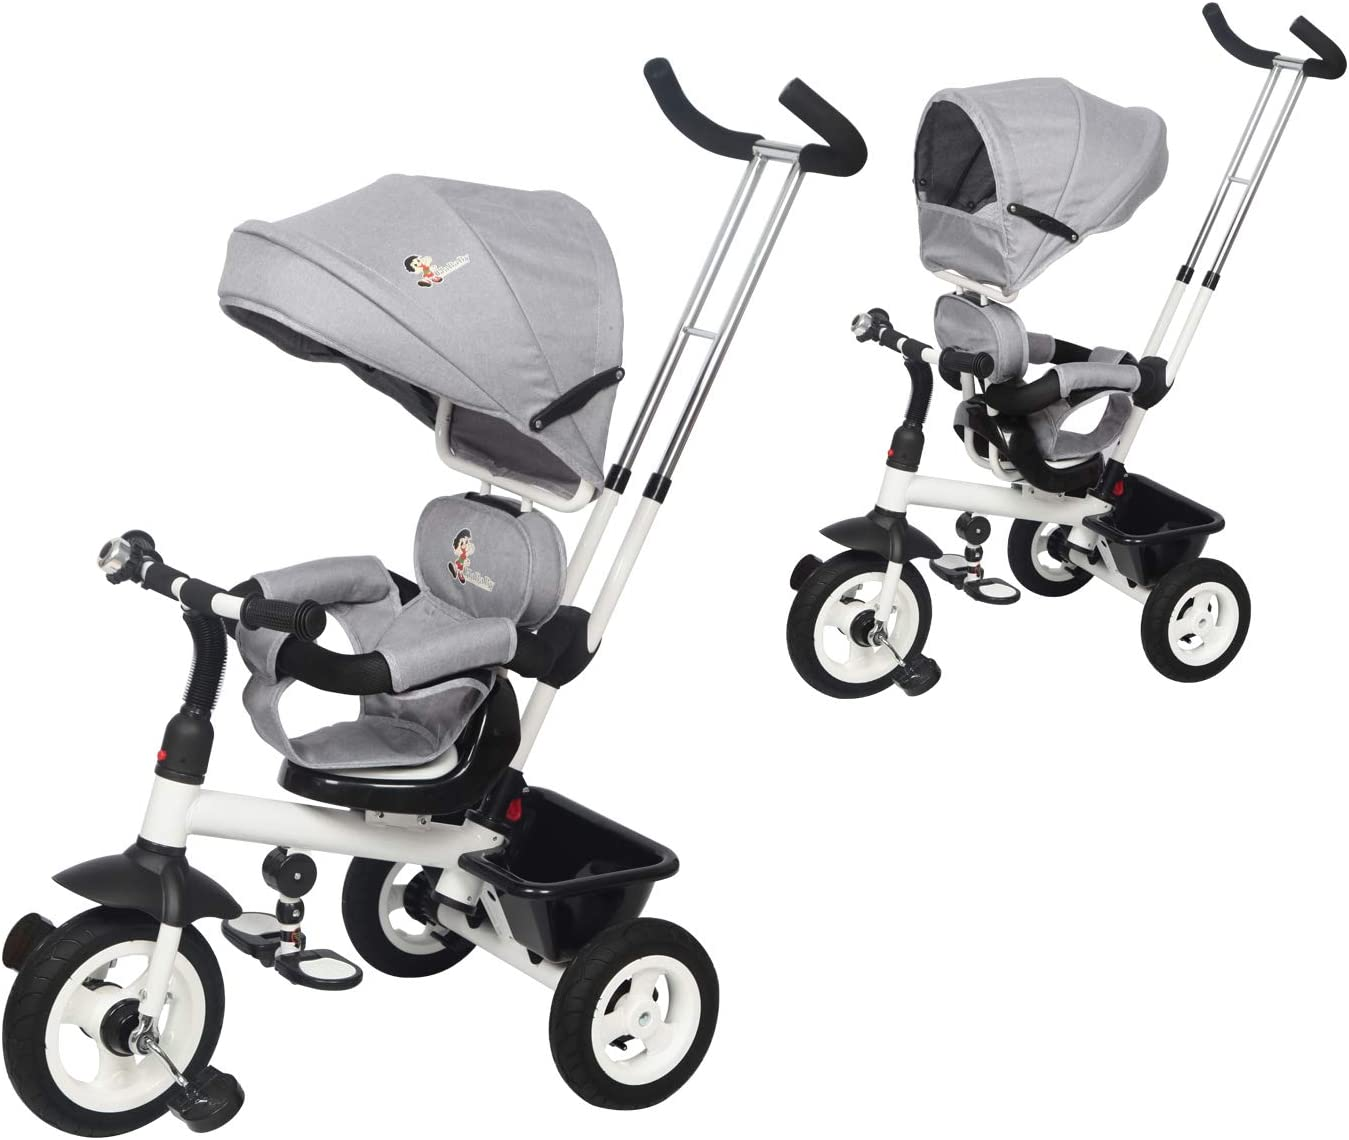 Diroan Baby Tricycle, 6-in-1 Kids Trike & Stroller with Adjustable Push Handle, Removable Canopy, Safety Harness for 8 Months - 6 Year Old